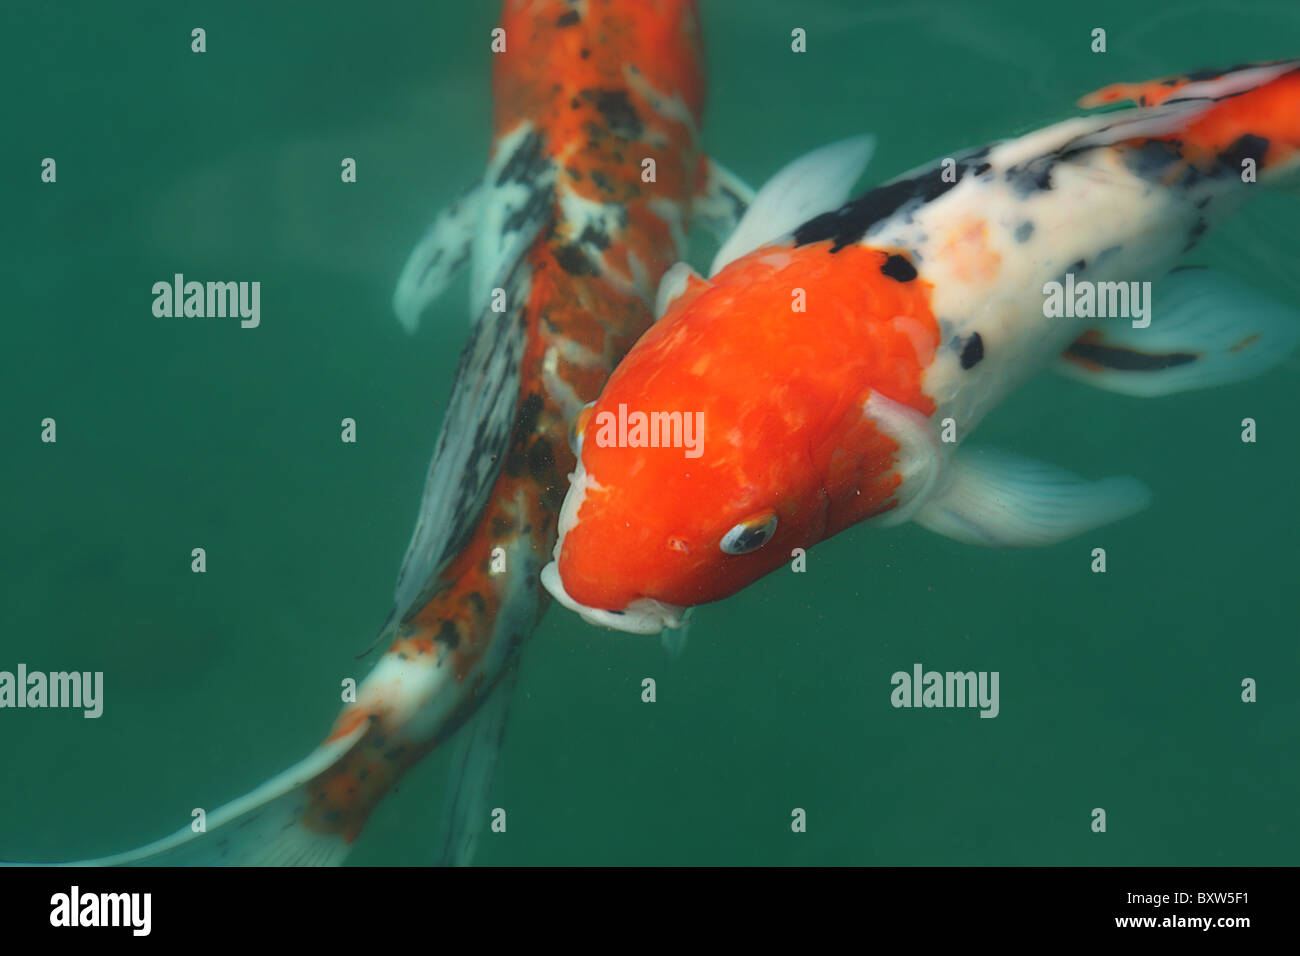 Beautiful Koi fish in a pond - Stock Image